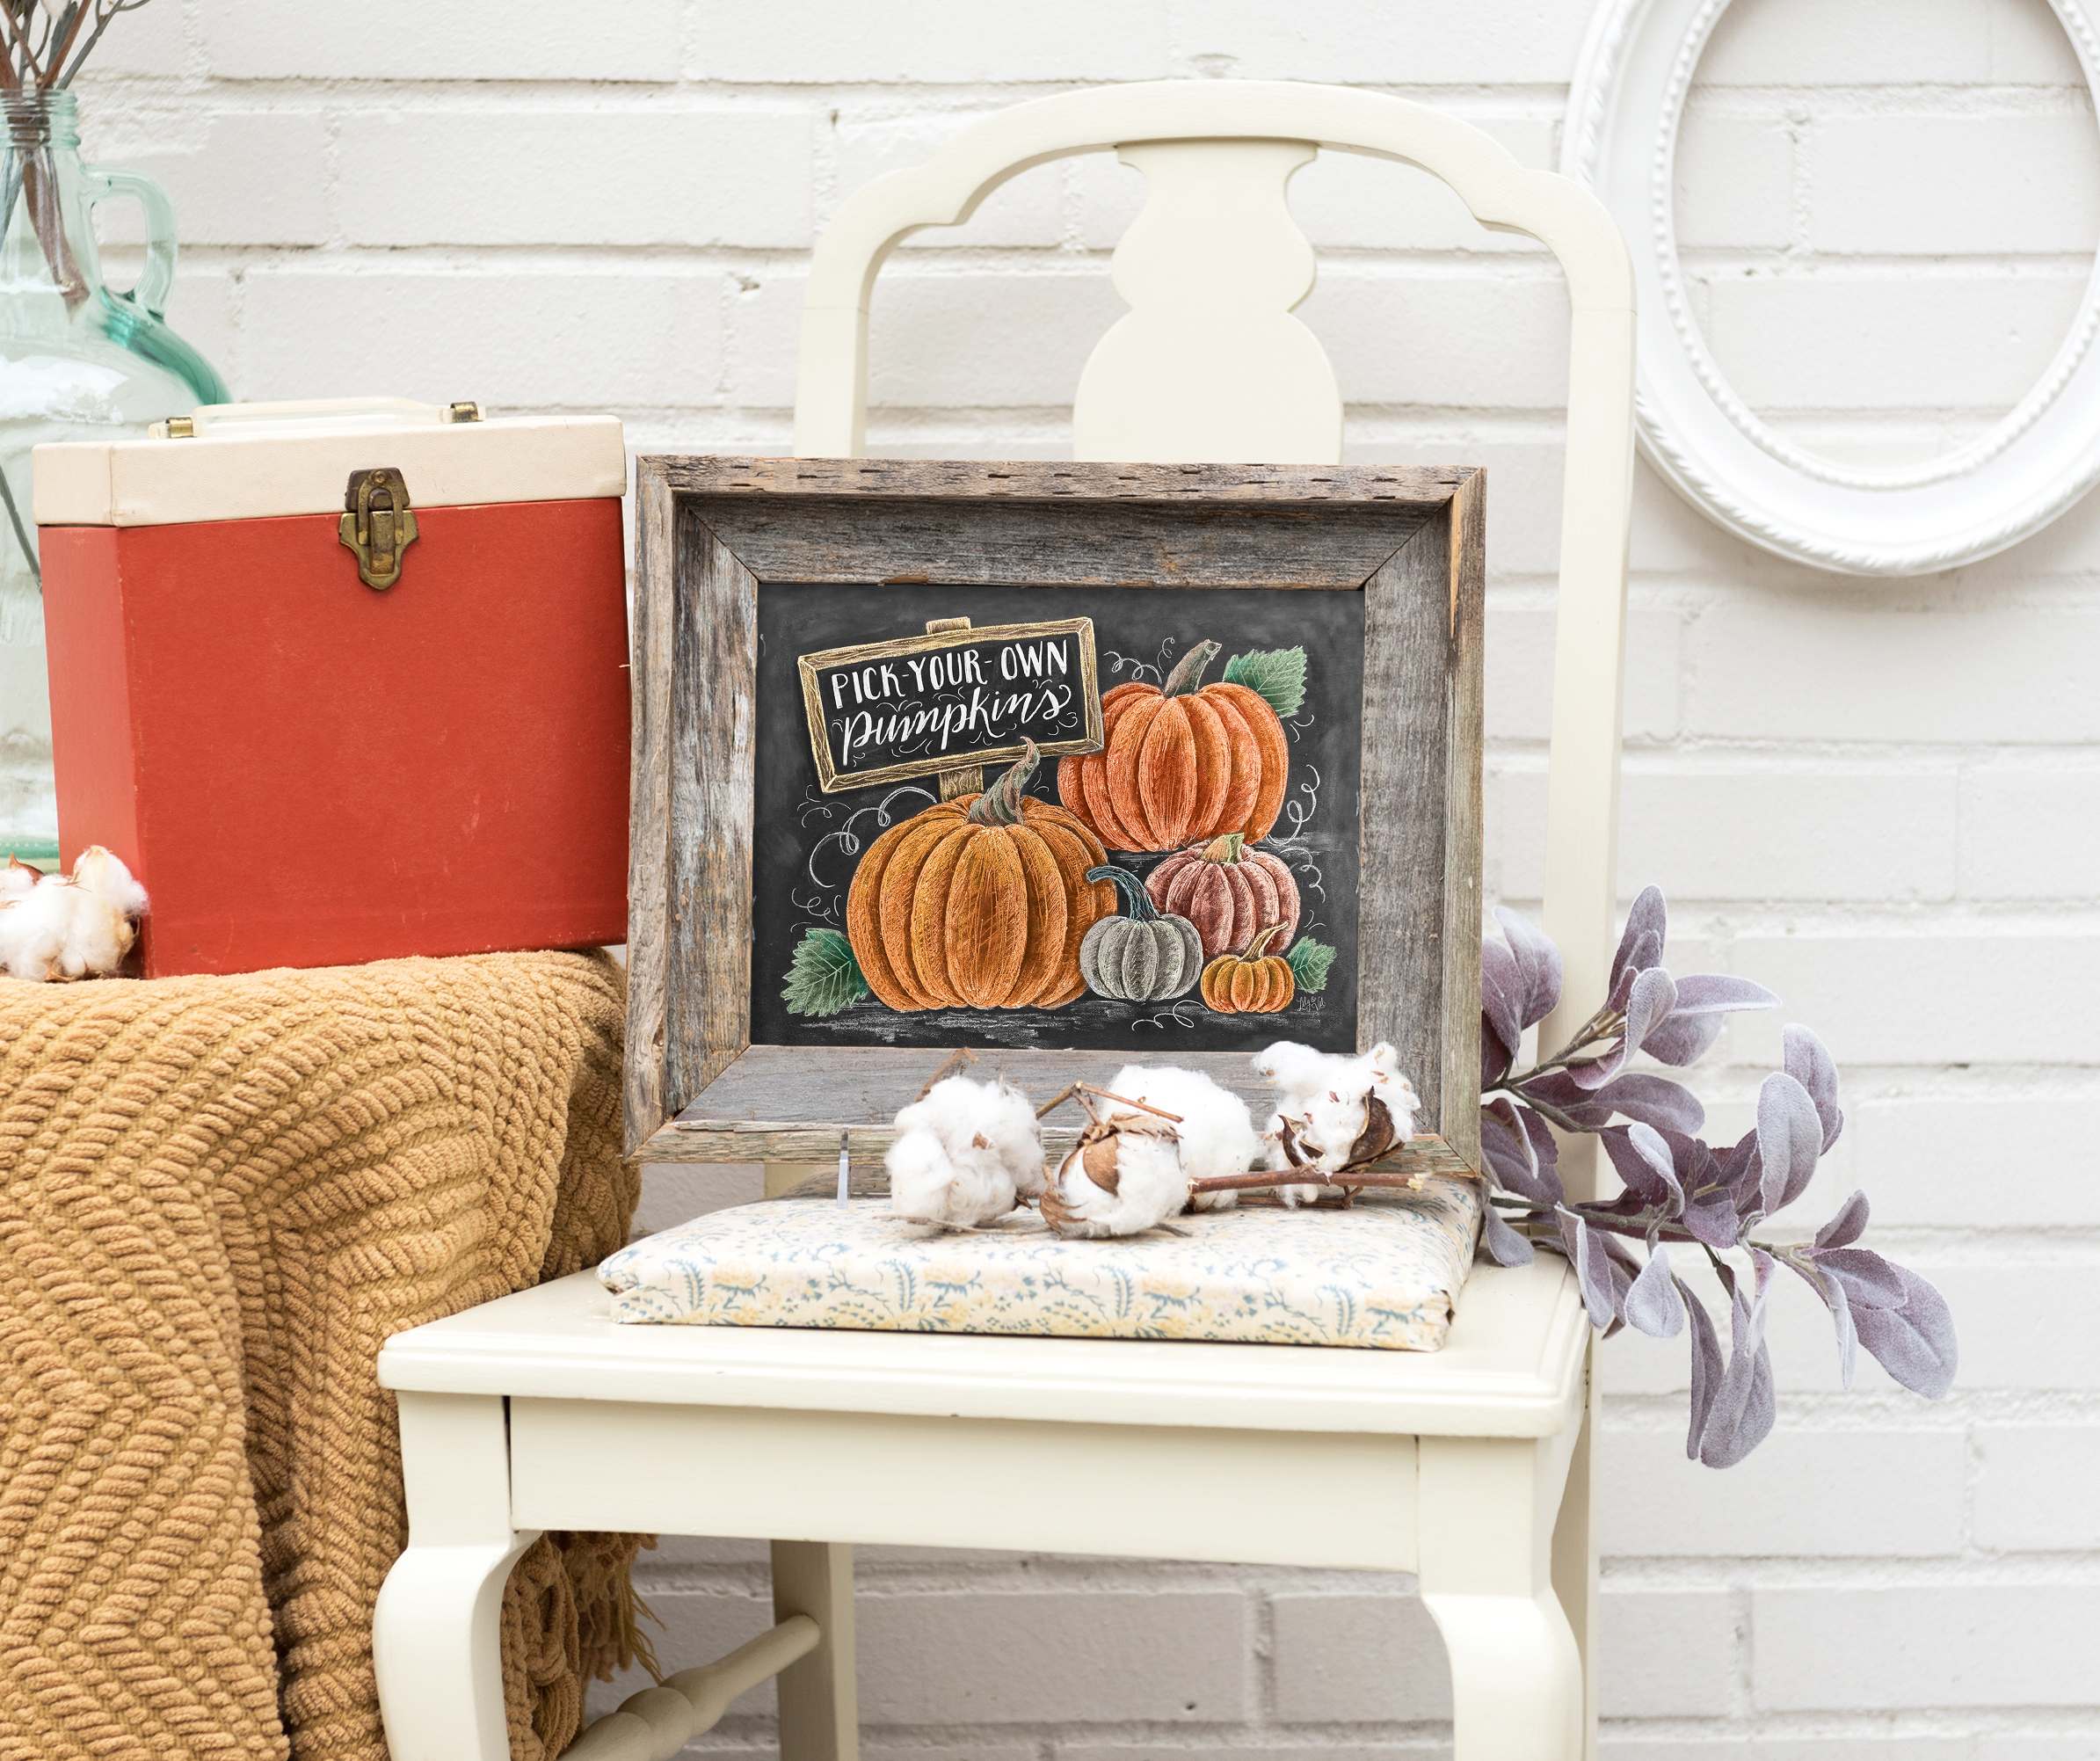 Bring a rustic chic touch to your fall decor with our Pick-your-own pumpkins chalkboard sign